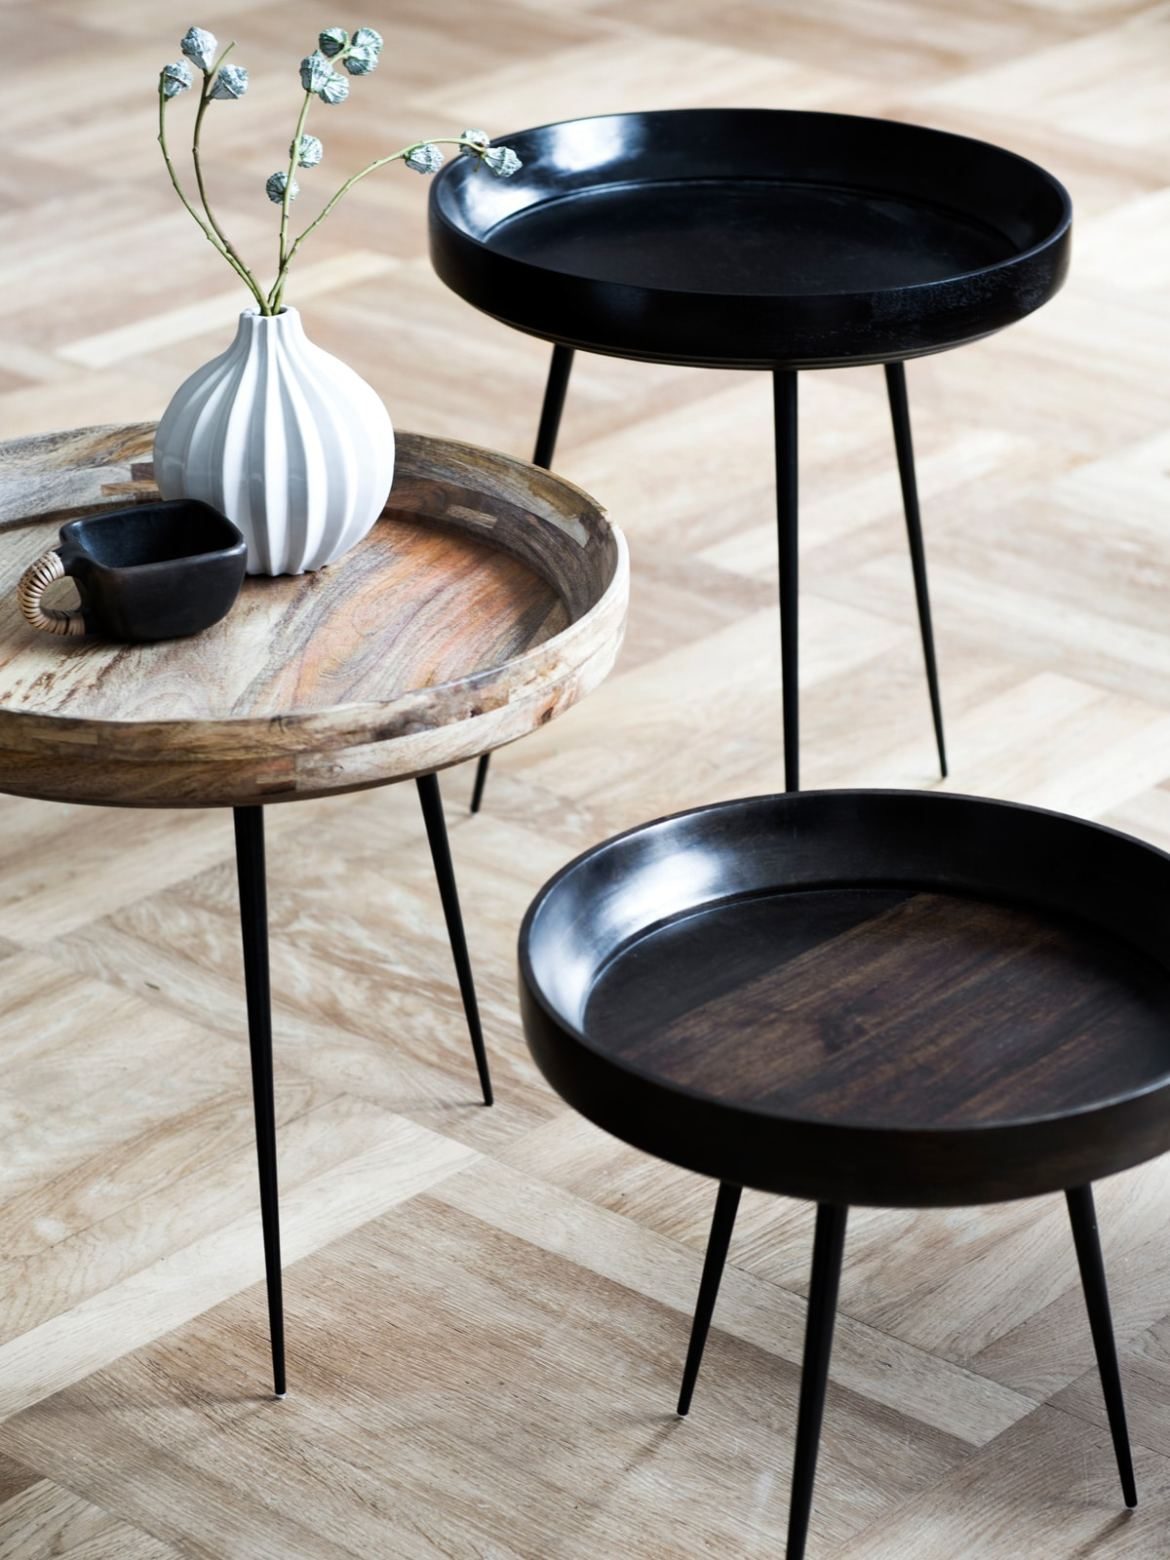 Bowl Table von Mater Onlineshop Designort